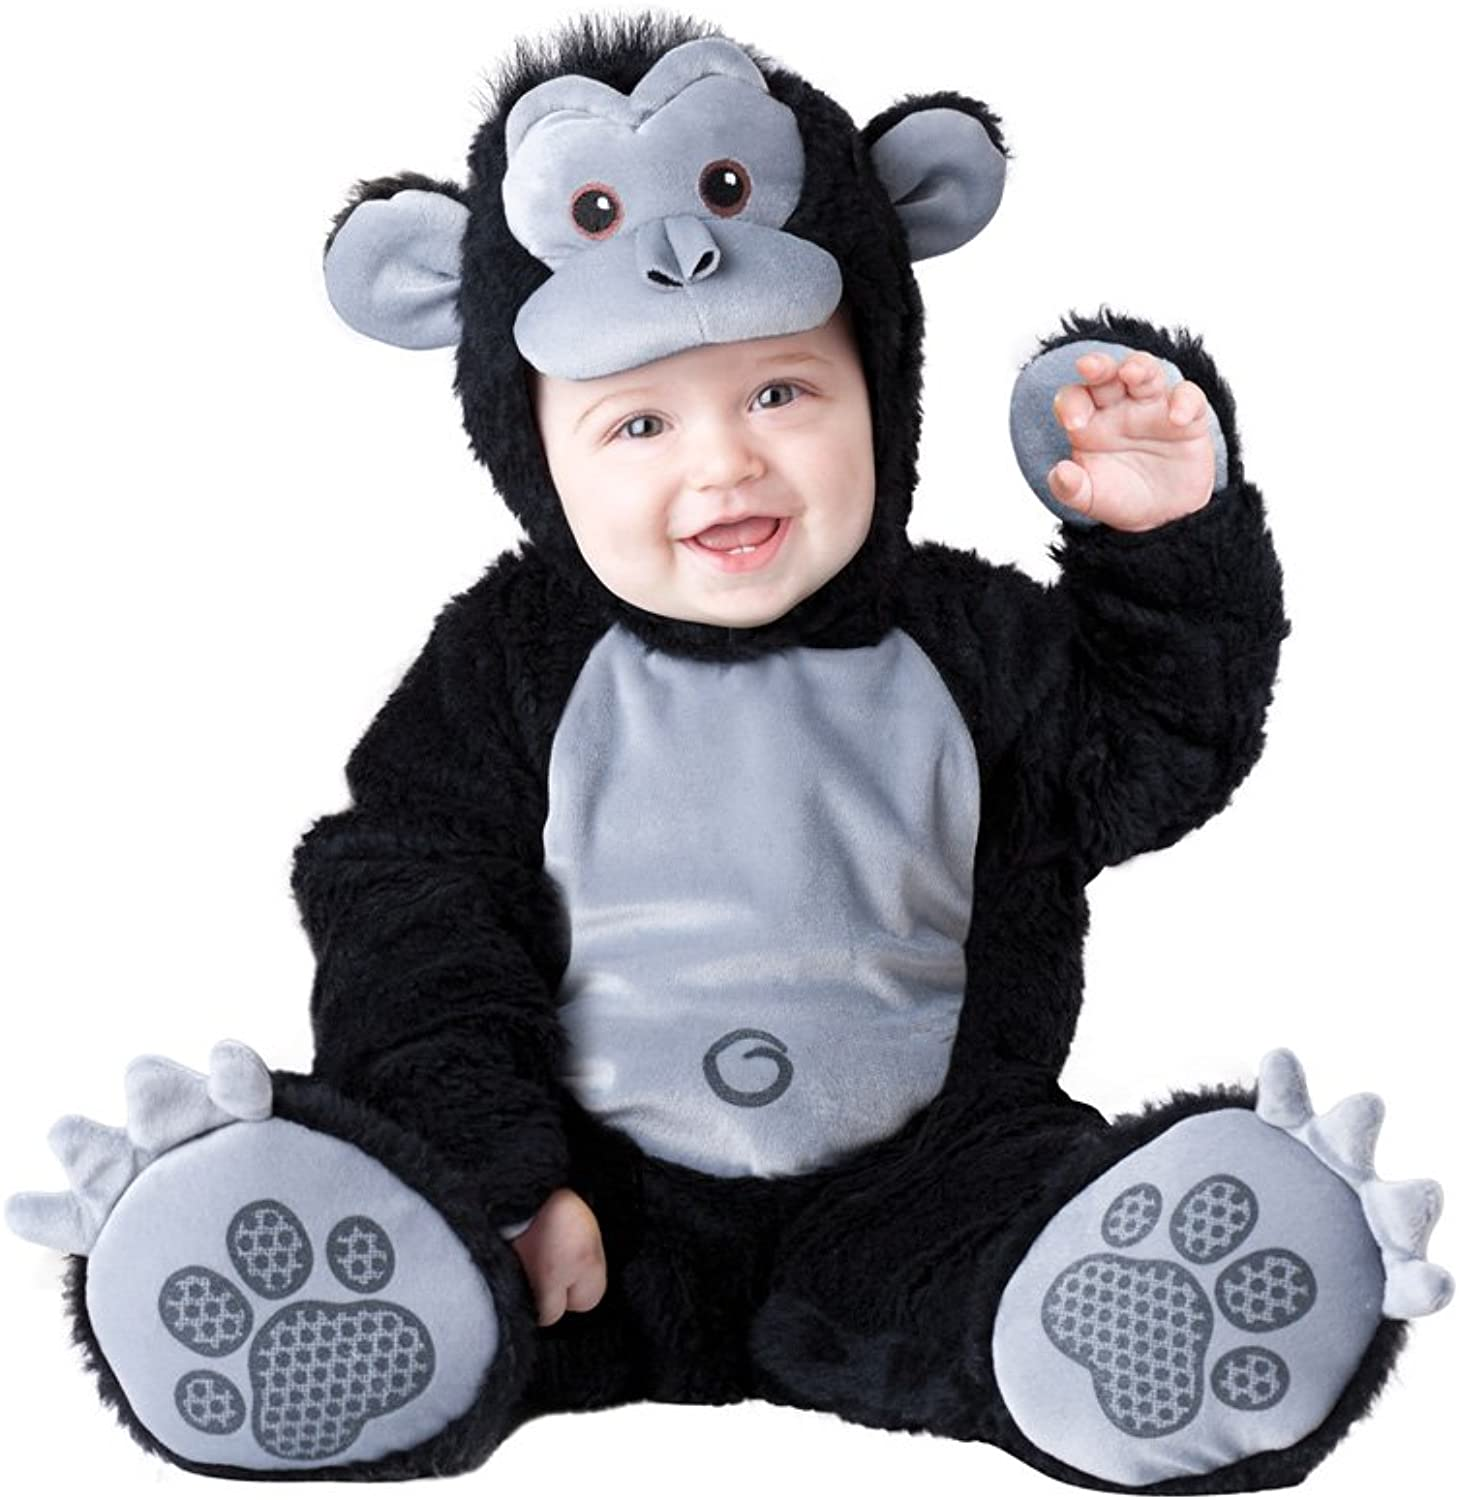 Goofy Gorilla Infant Toddler Costume Small 6-12 Months